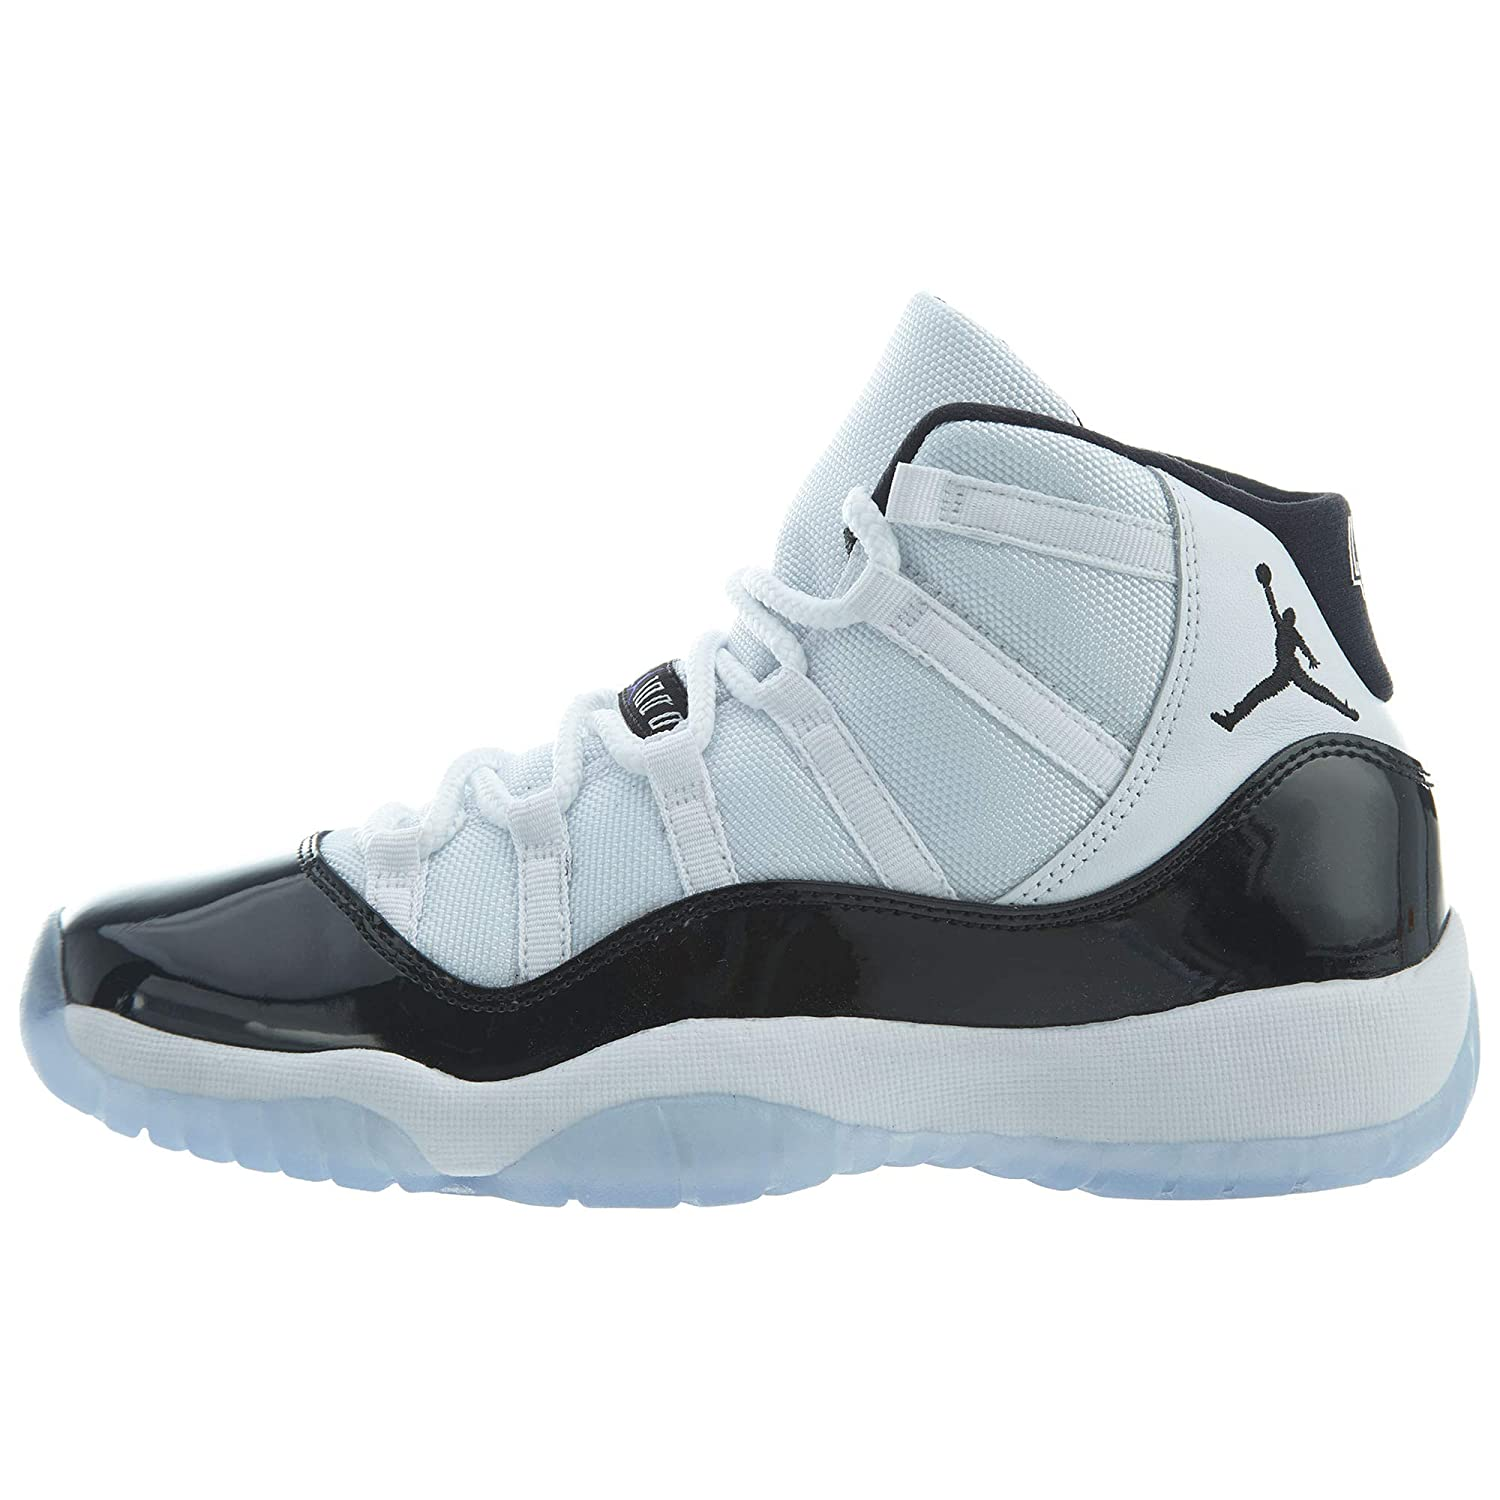 8114ba5ffb Amazon.com | Nike Big Kids Jordan Retro 11